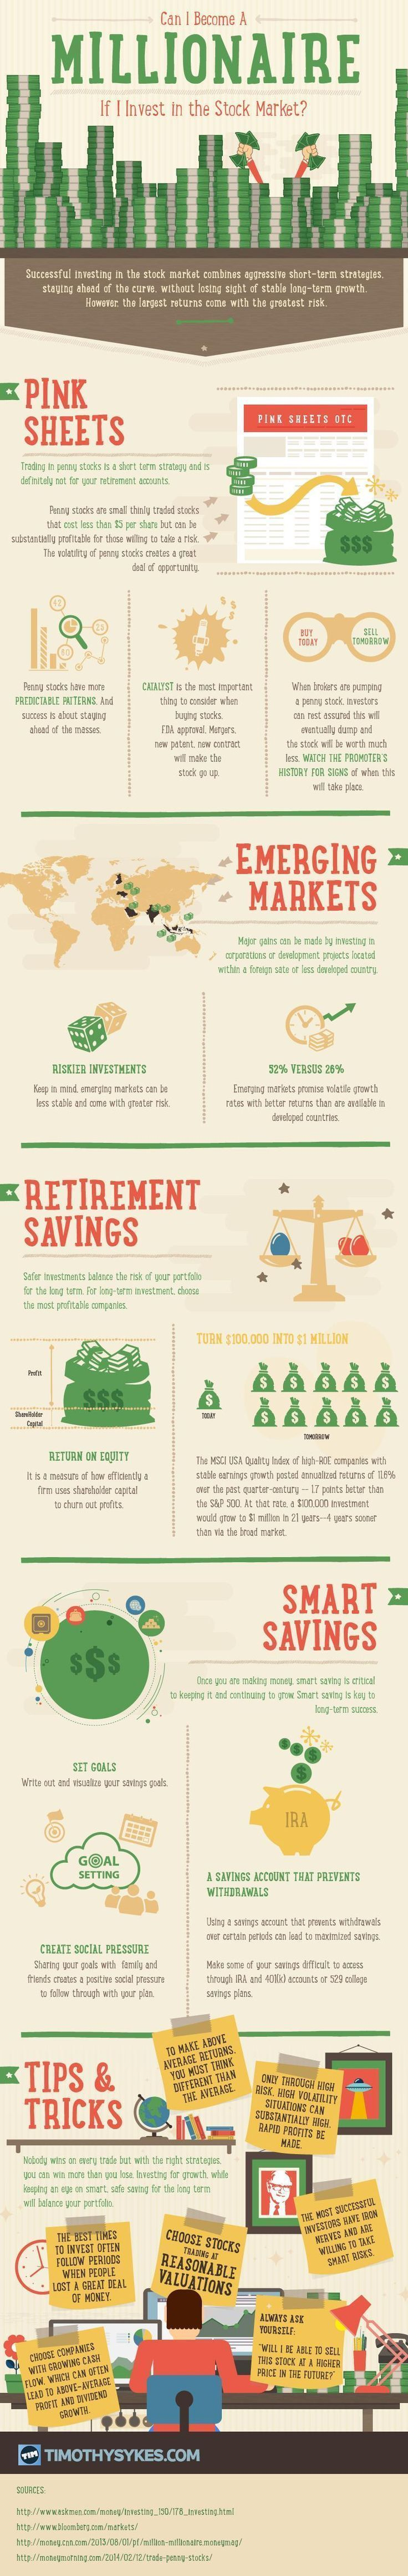 Can I Become A Millionaire If I Invest In The Stock Market? investing the right way, investing basics, investing tips #investing #investingtips investing basics, how to invest #personalfinance #universityfinancial